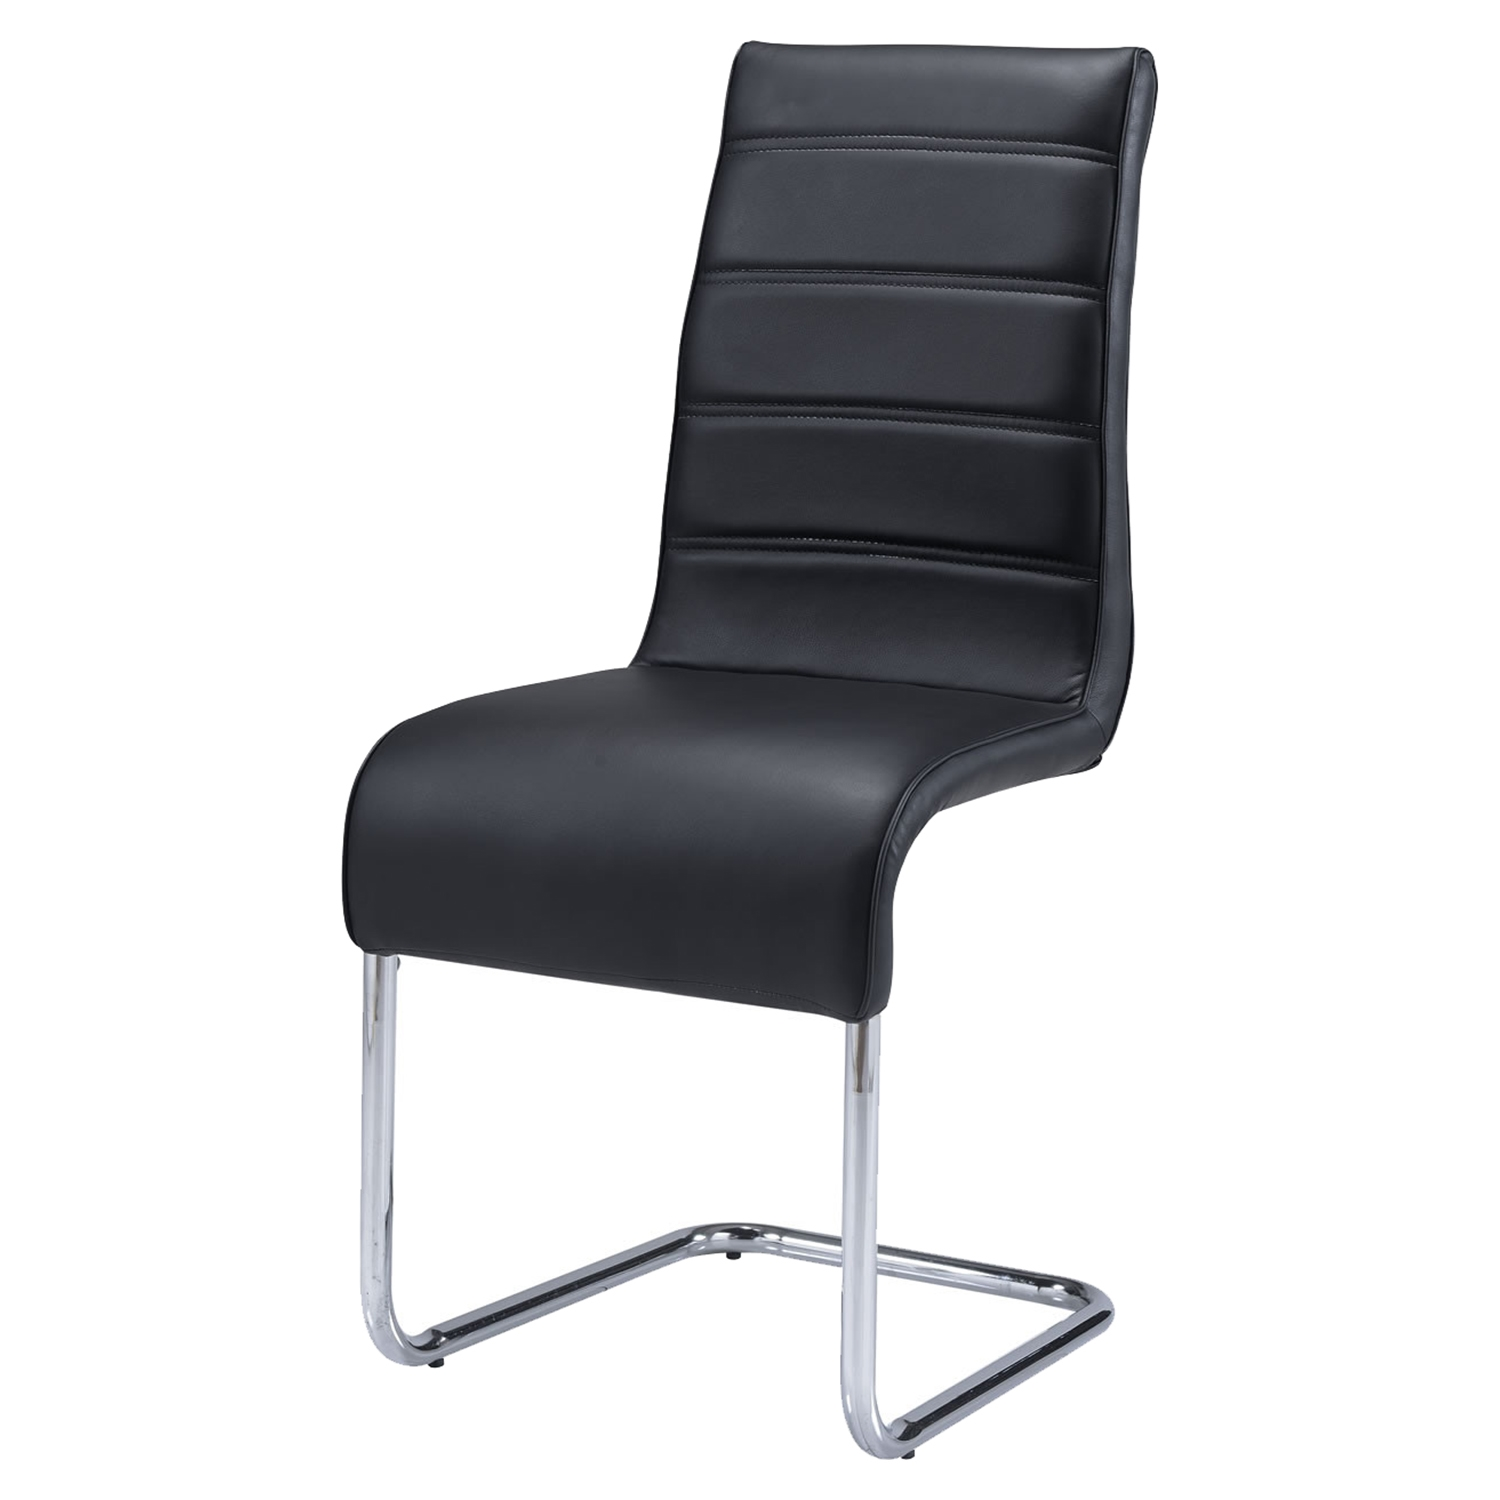 Caitlin Dining Chair in Black and Chrome - GLO-D1087DC-M